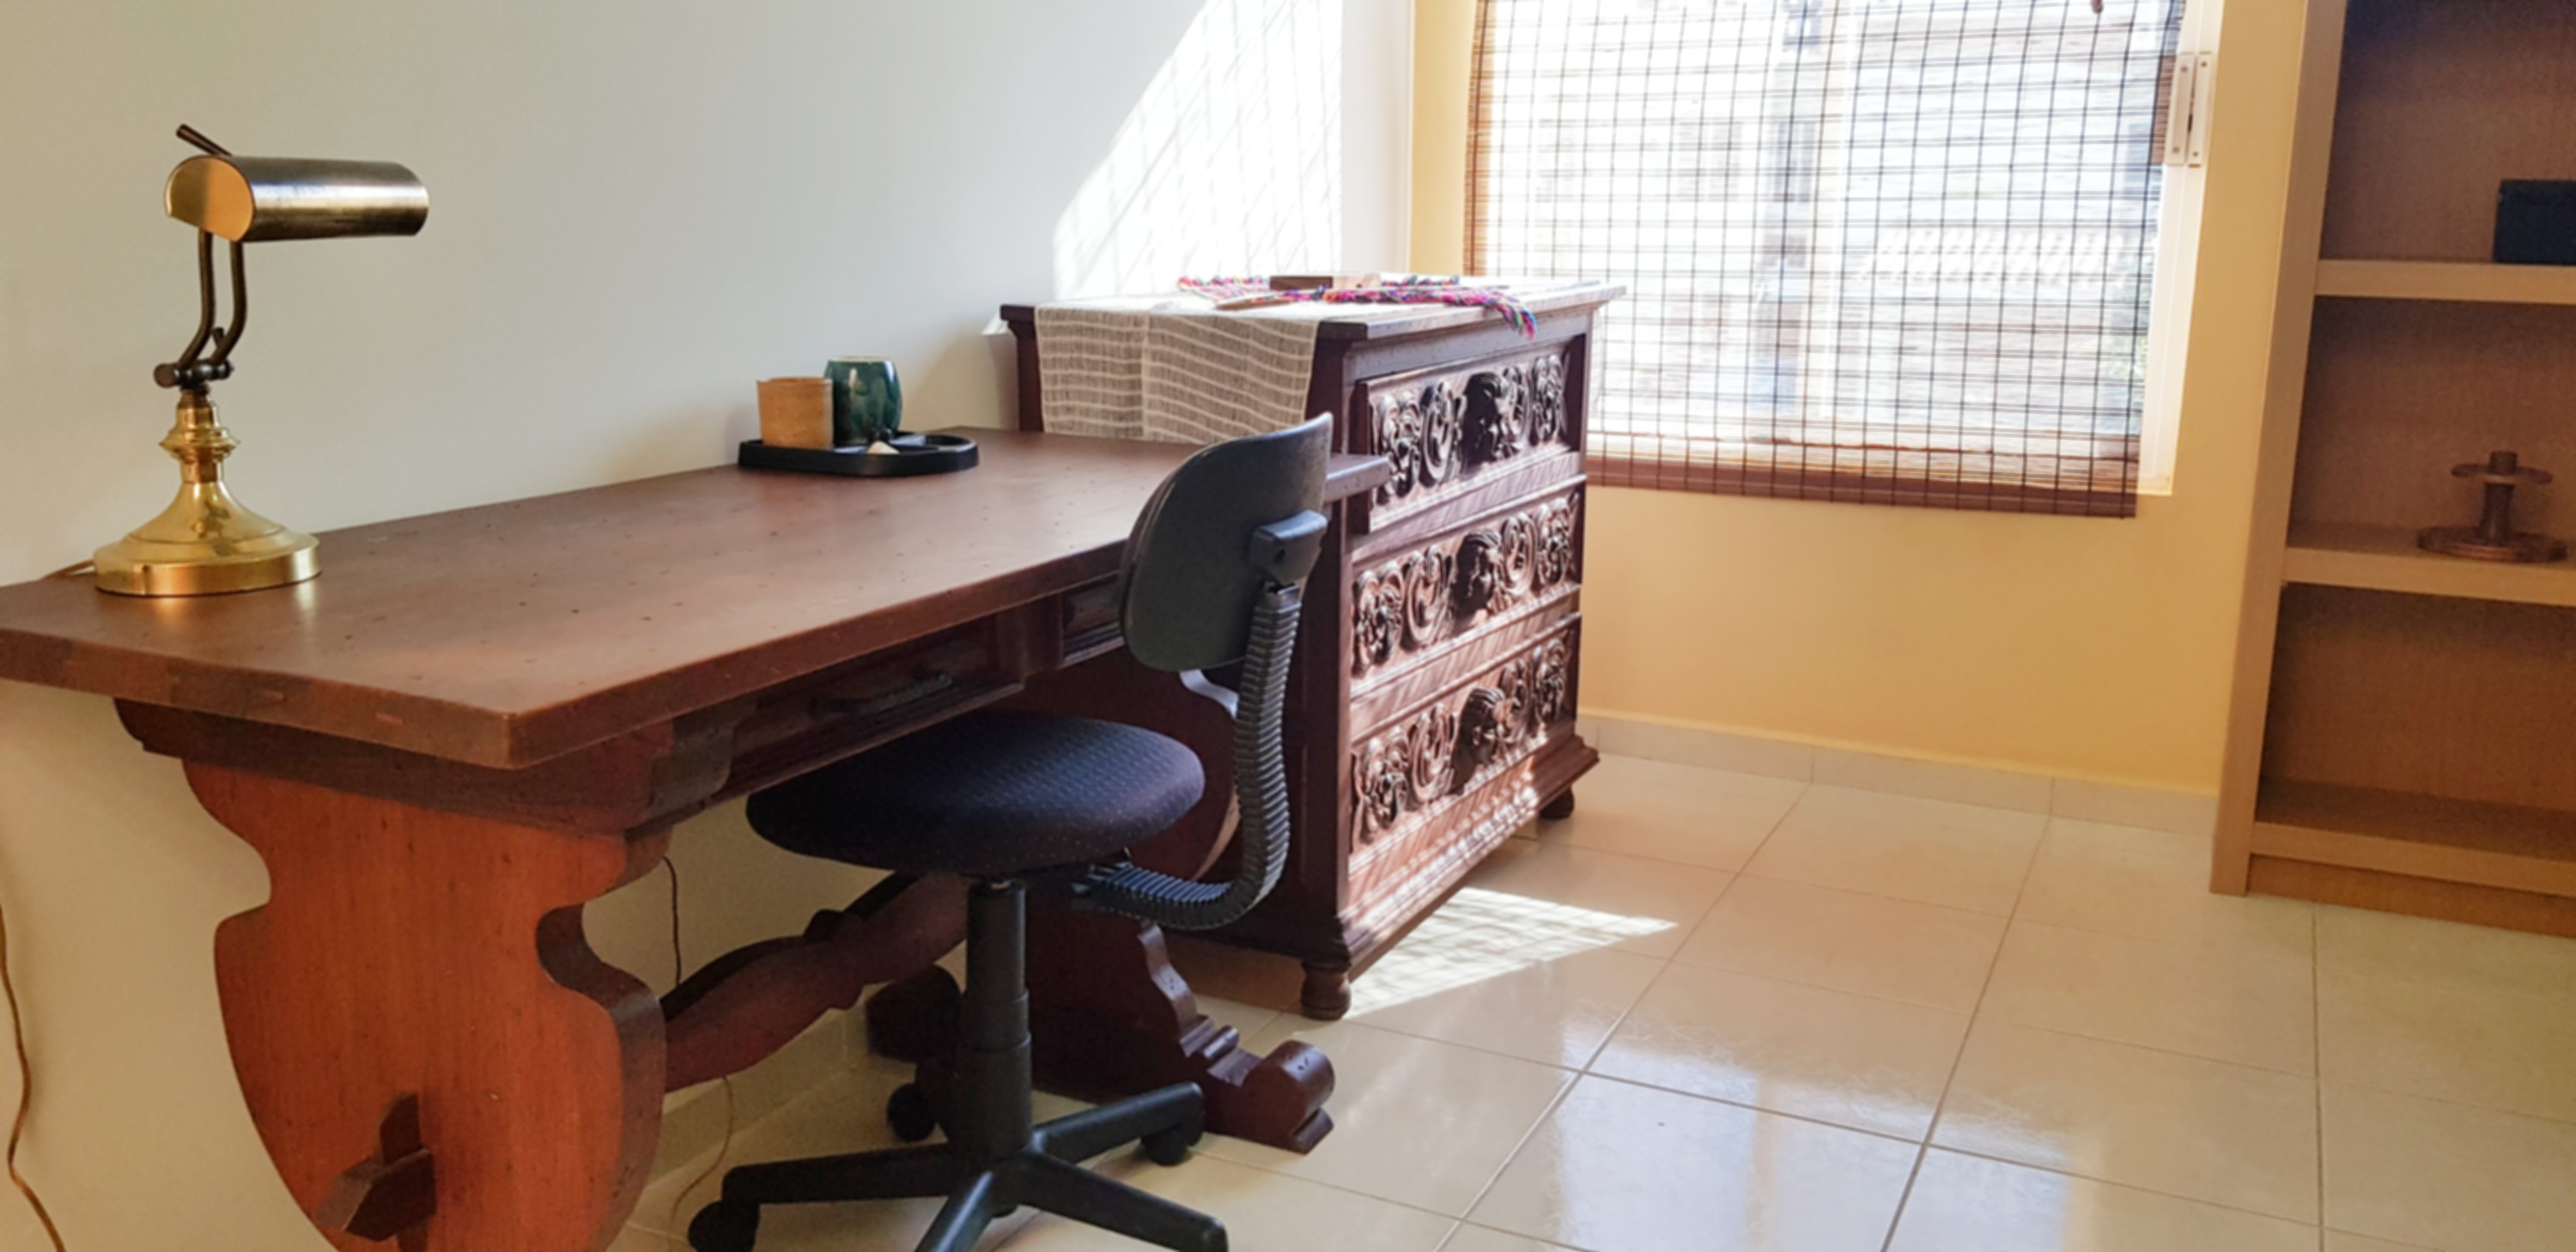 Upstairs desk and workspace.